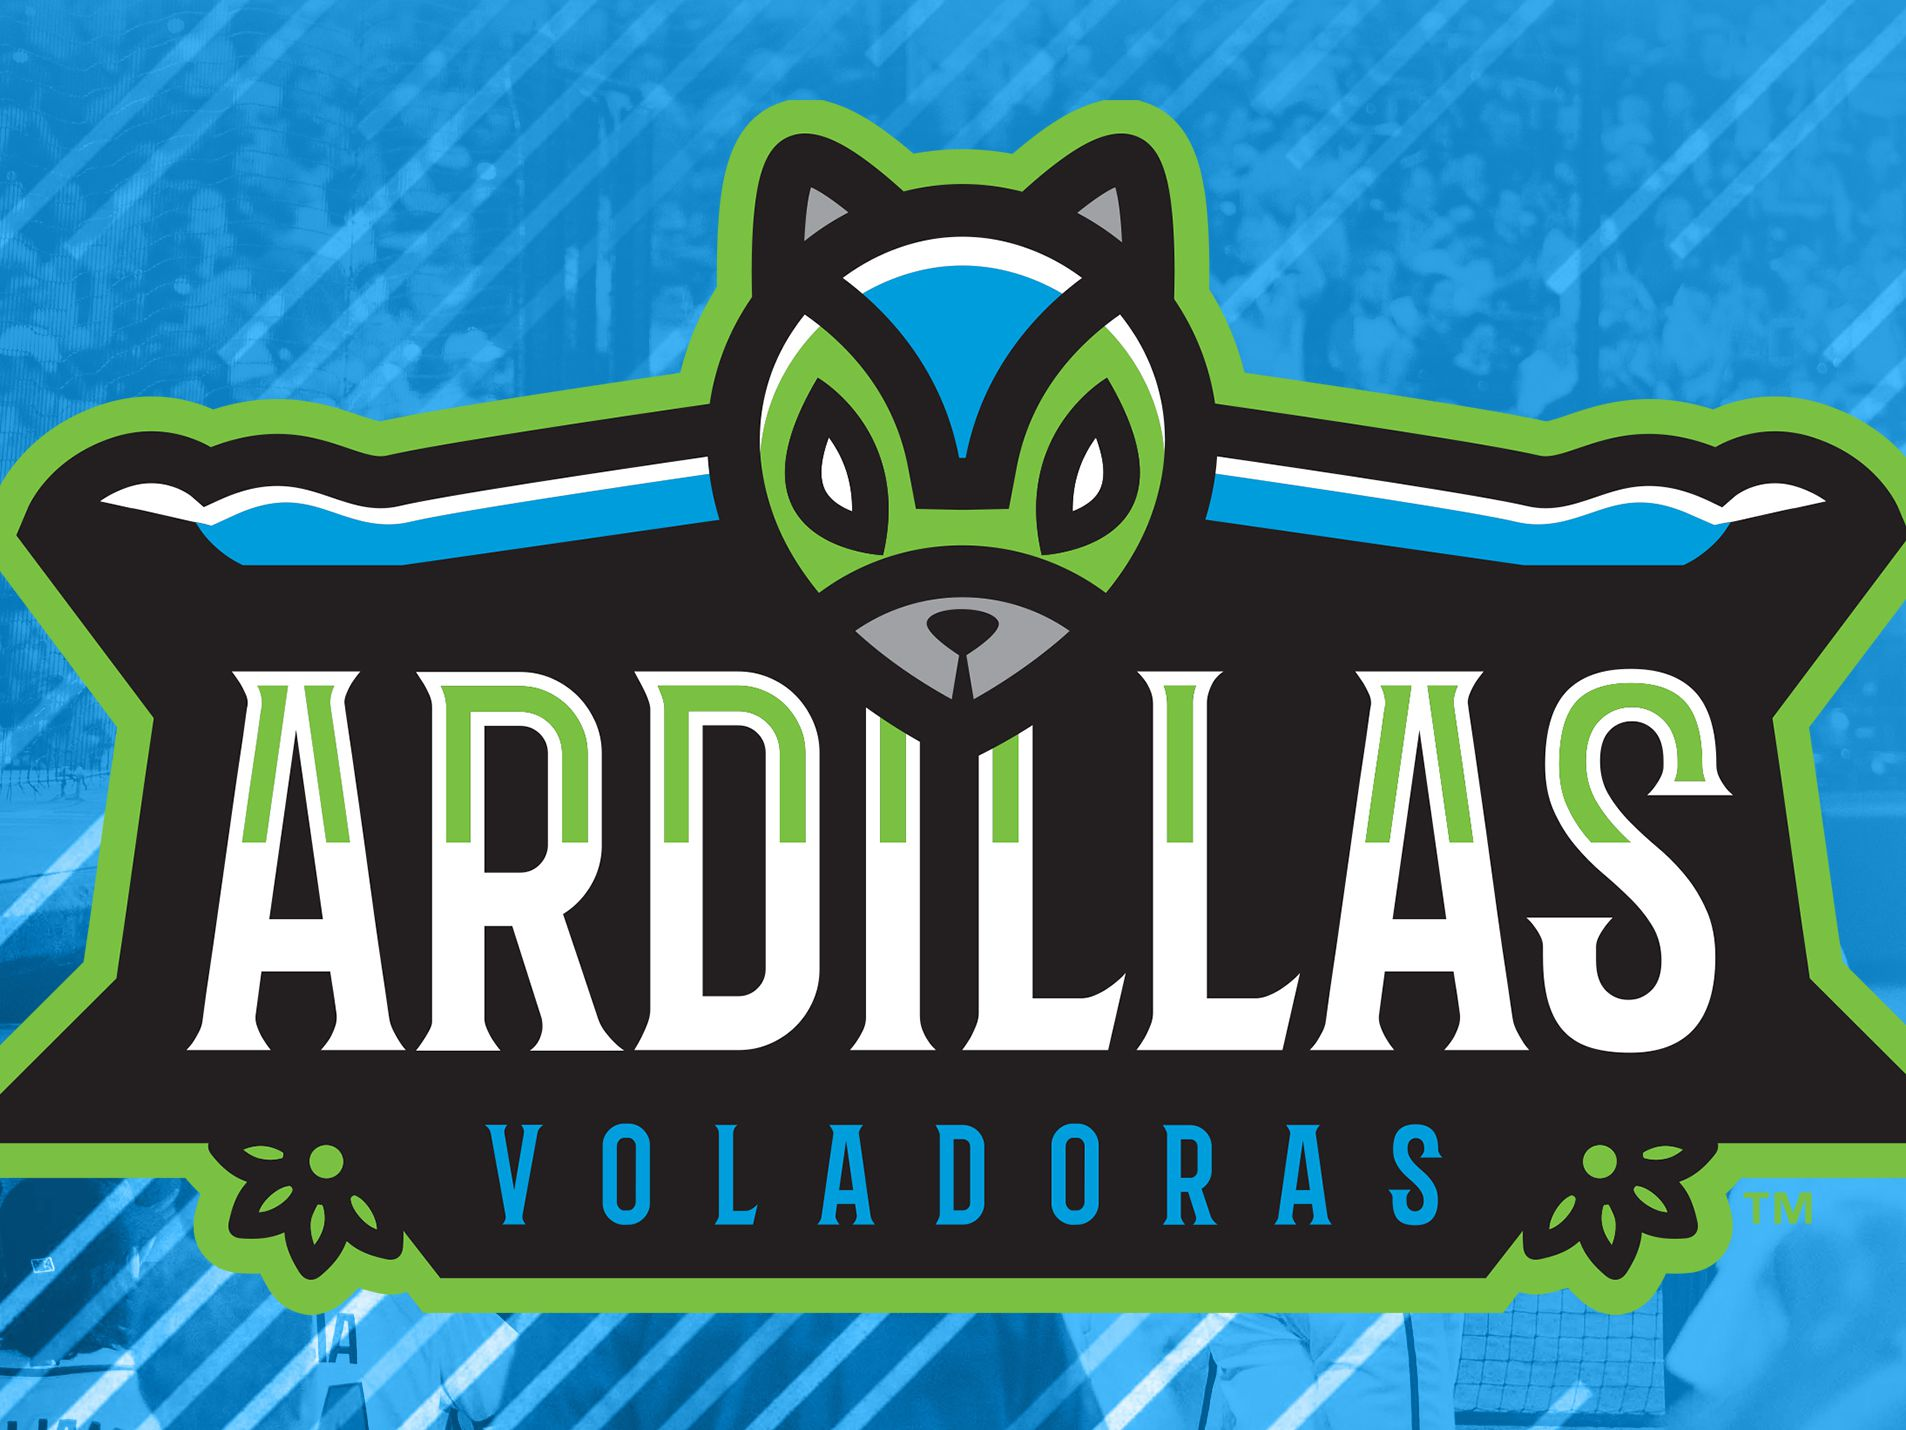 Flying Squirrels to be Ardillas Voladoras for Friday games